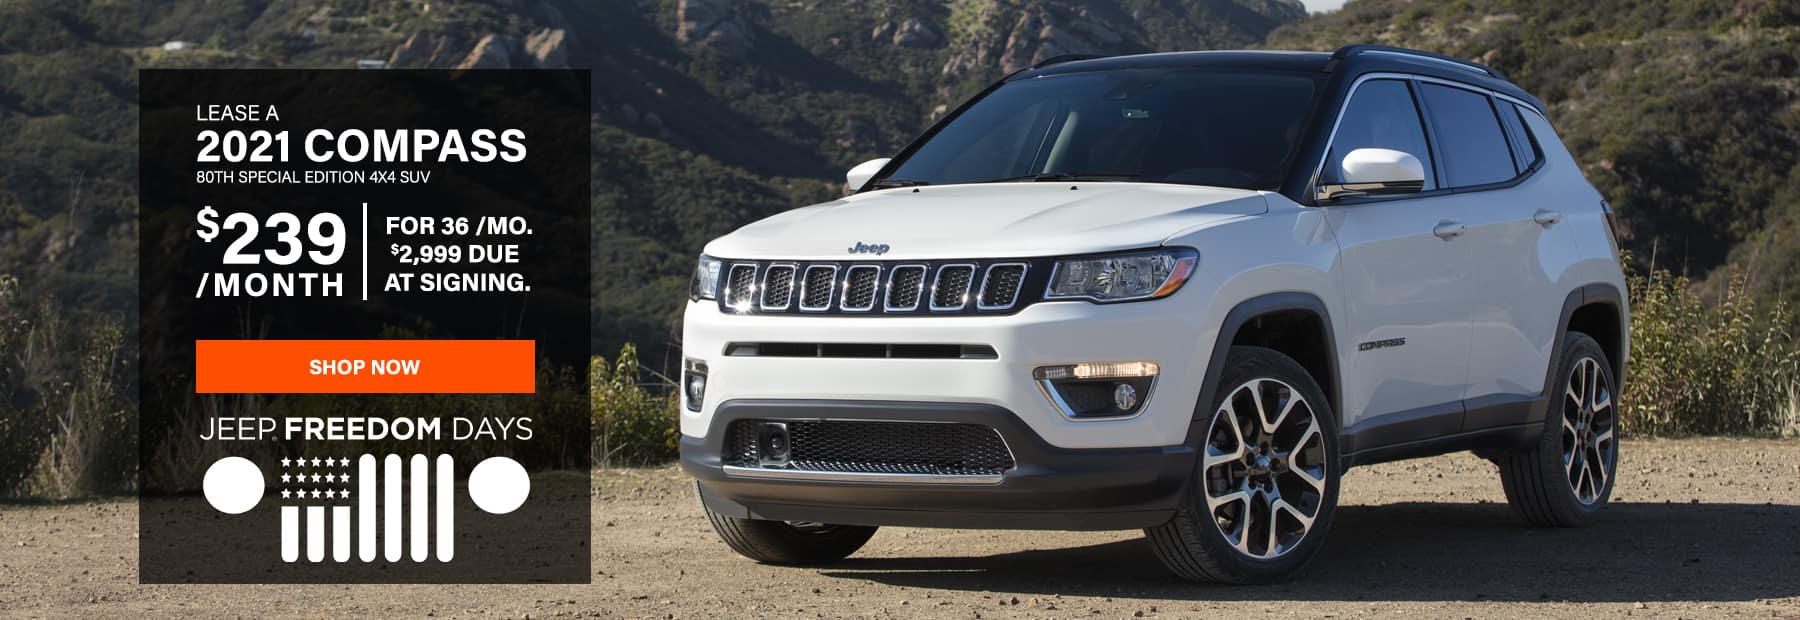 2021-05-04 Jeep Compass Desktop